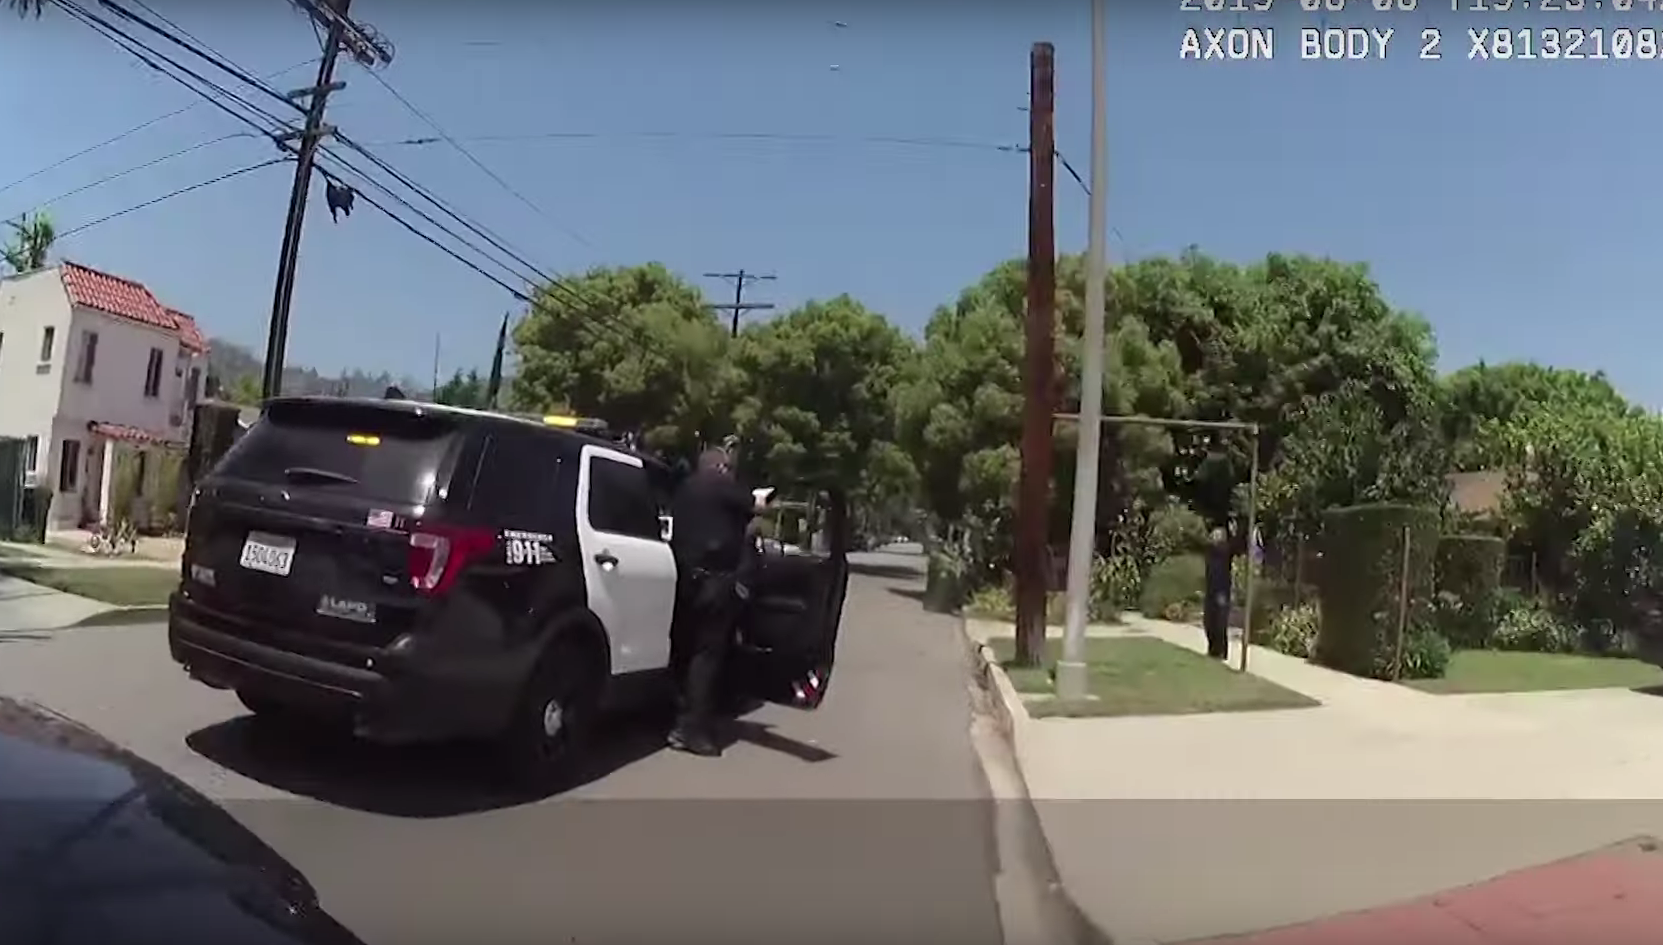 A still from a video recorded by a bodycam worn by a Los Angeles police officer shows an officer confronting Jose Antonio de Santiago-Medina in Atwater Village on June 6, 2019.